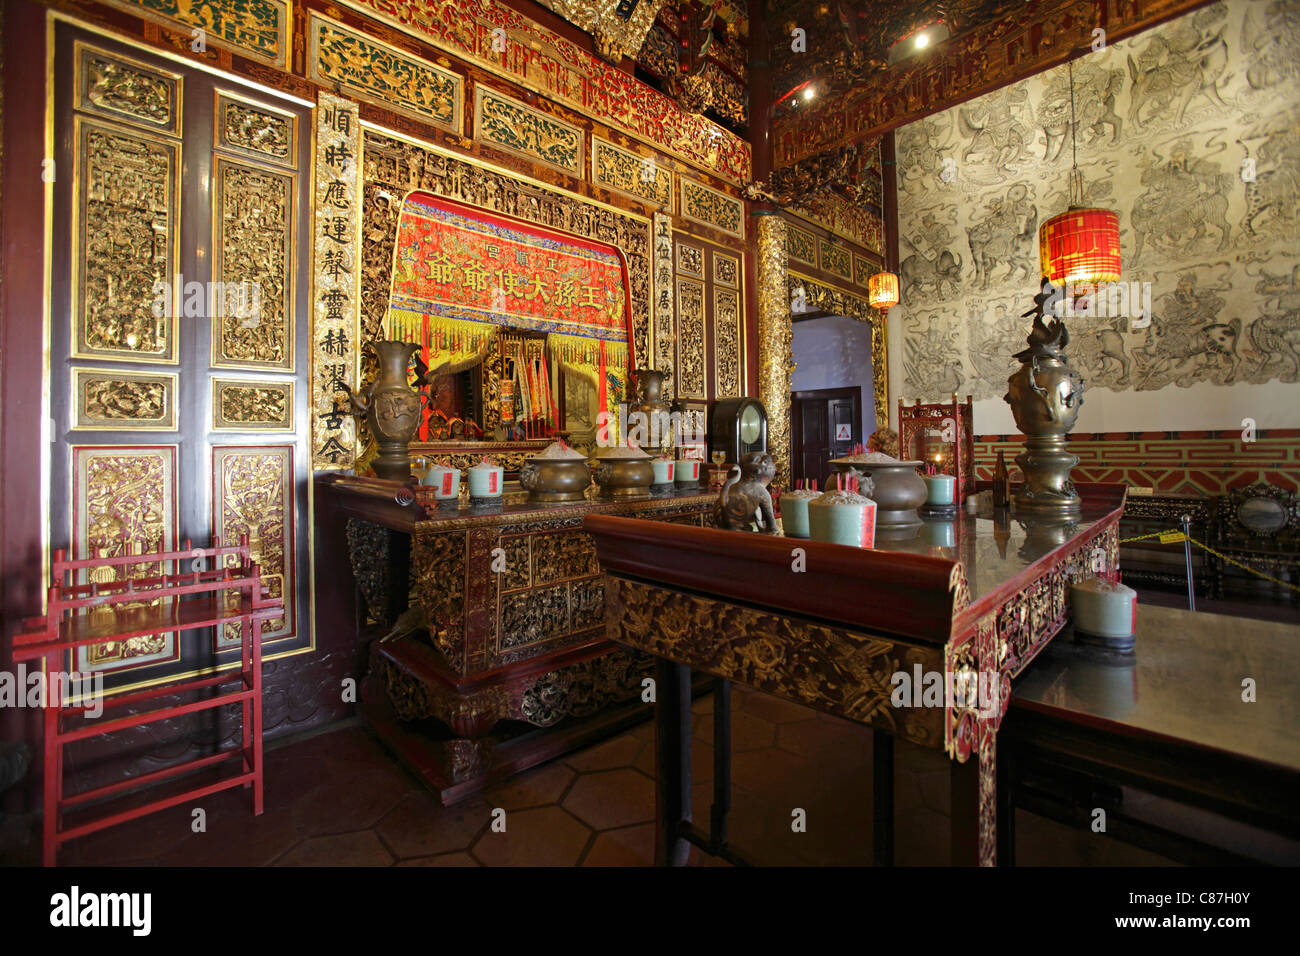 Khoo Kongsi clanhouse and temple, Georgetown, Penang, Malaysia - Stock Image